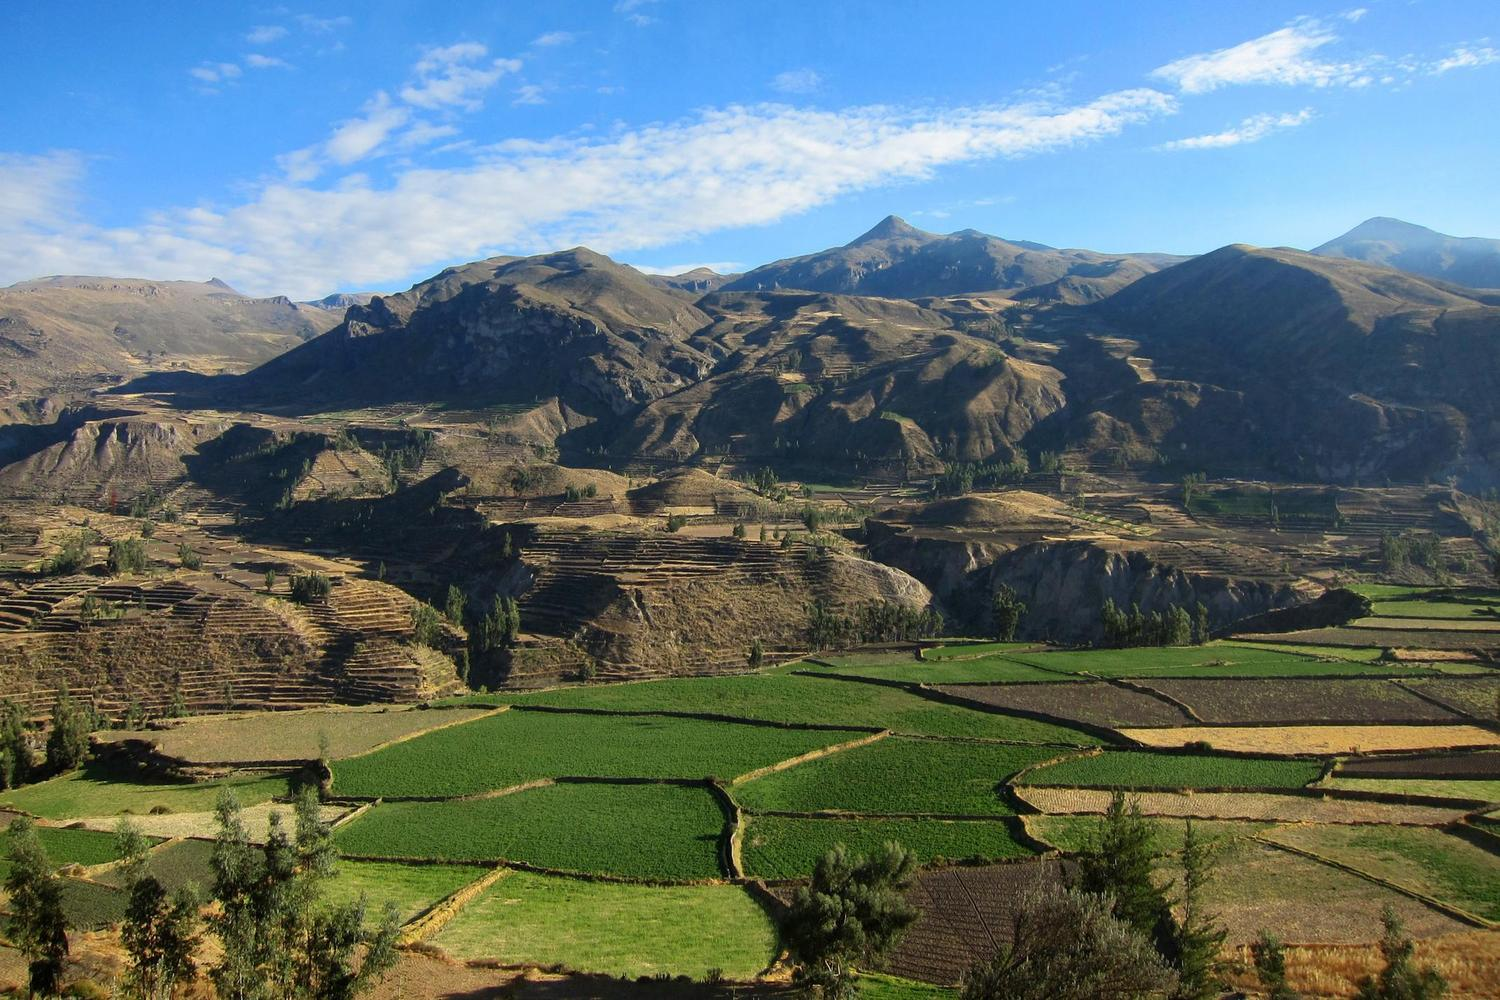 Looking out over the Colca Canyon